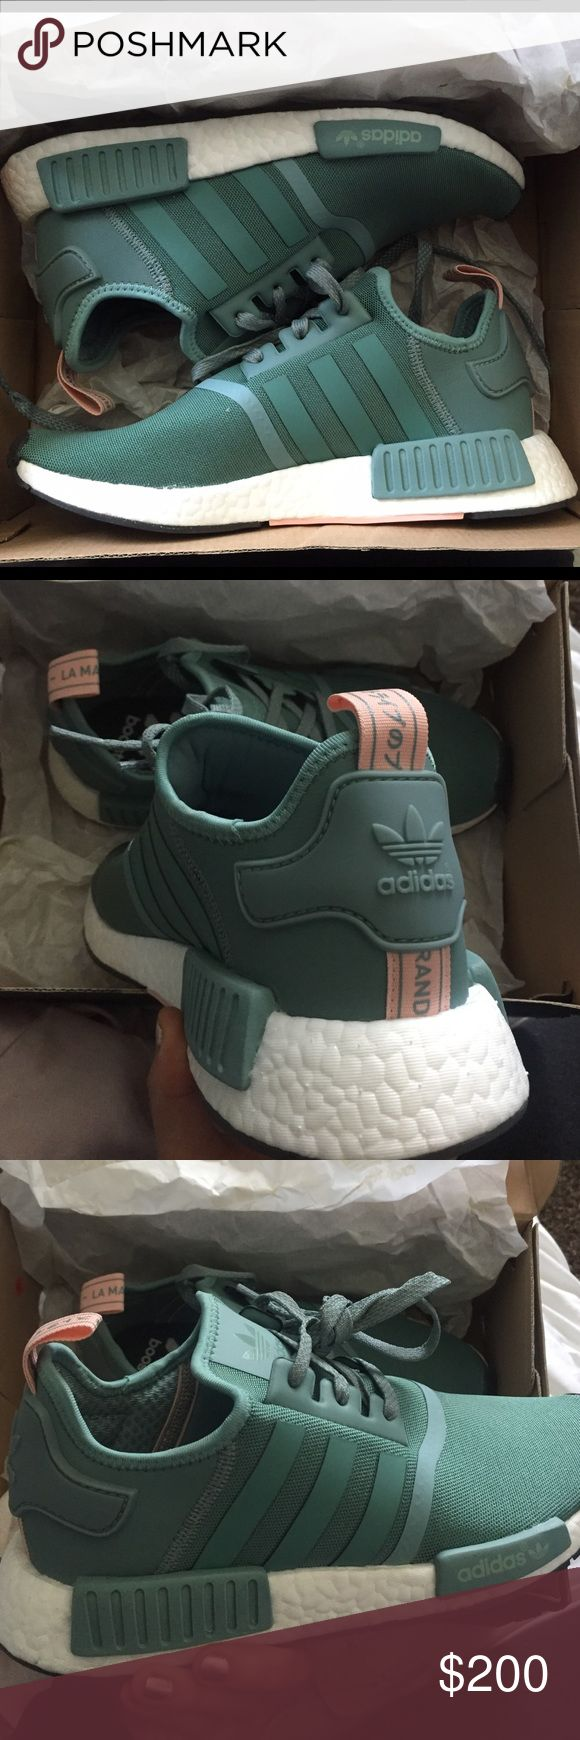 NMDS Adidas boost Never worn. New in box. Adidas Shoes Sneakers